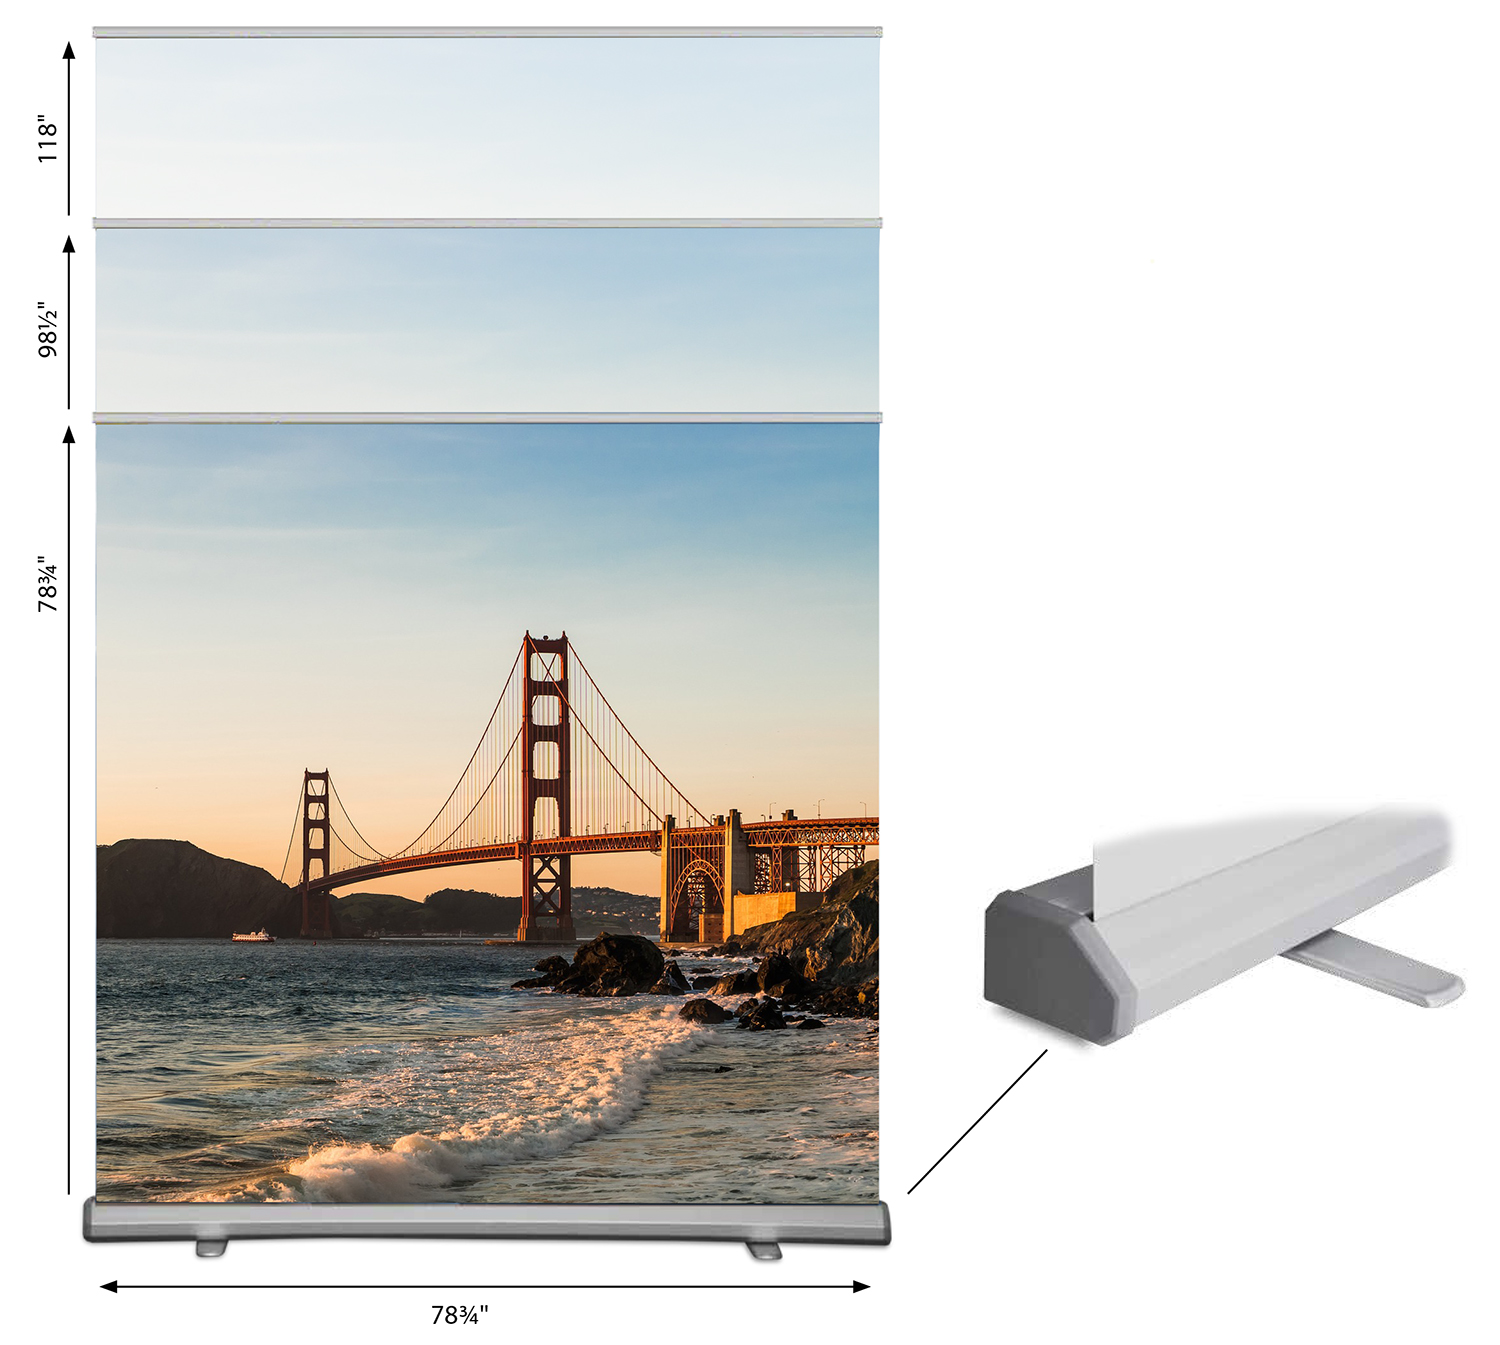 Hemel Large format deluxe rollup banner stand